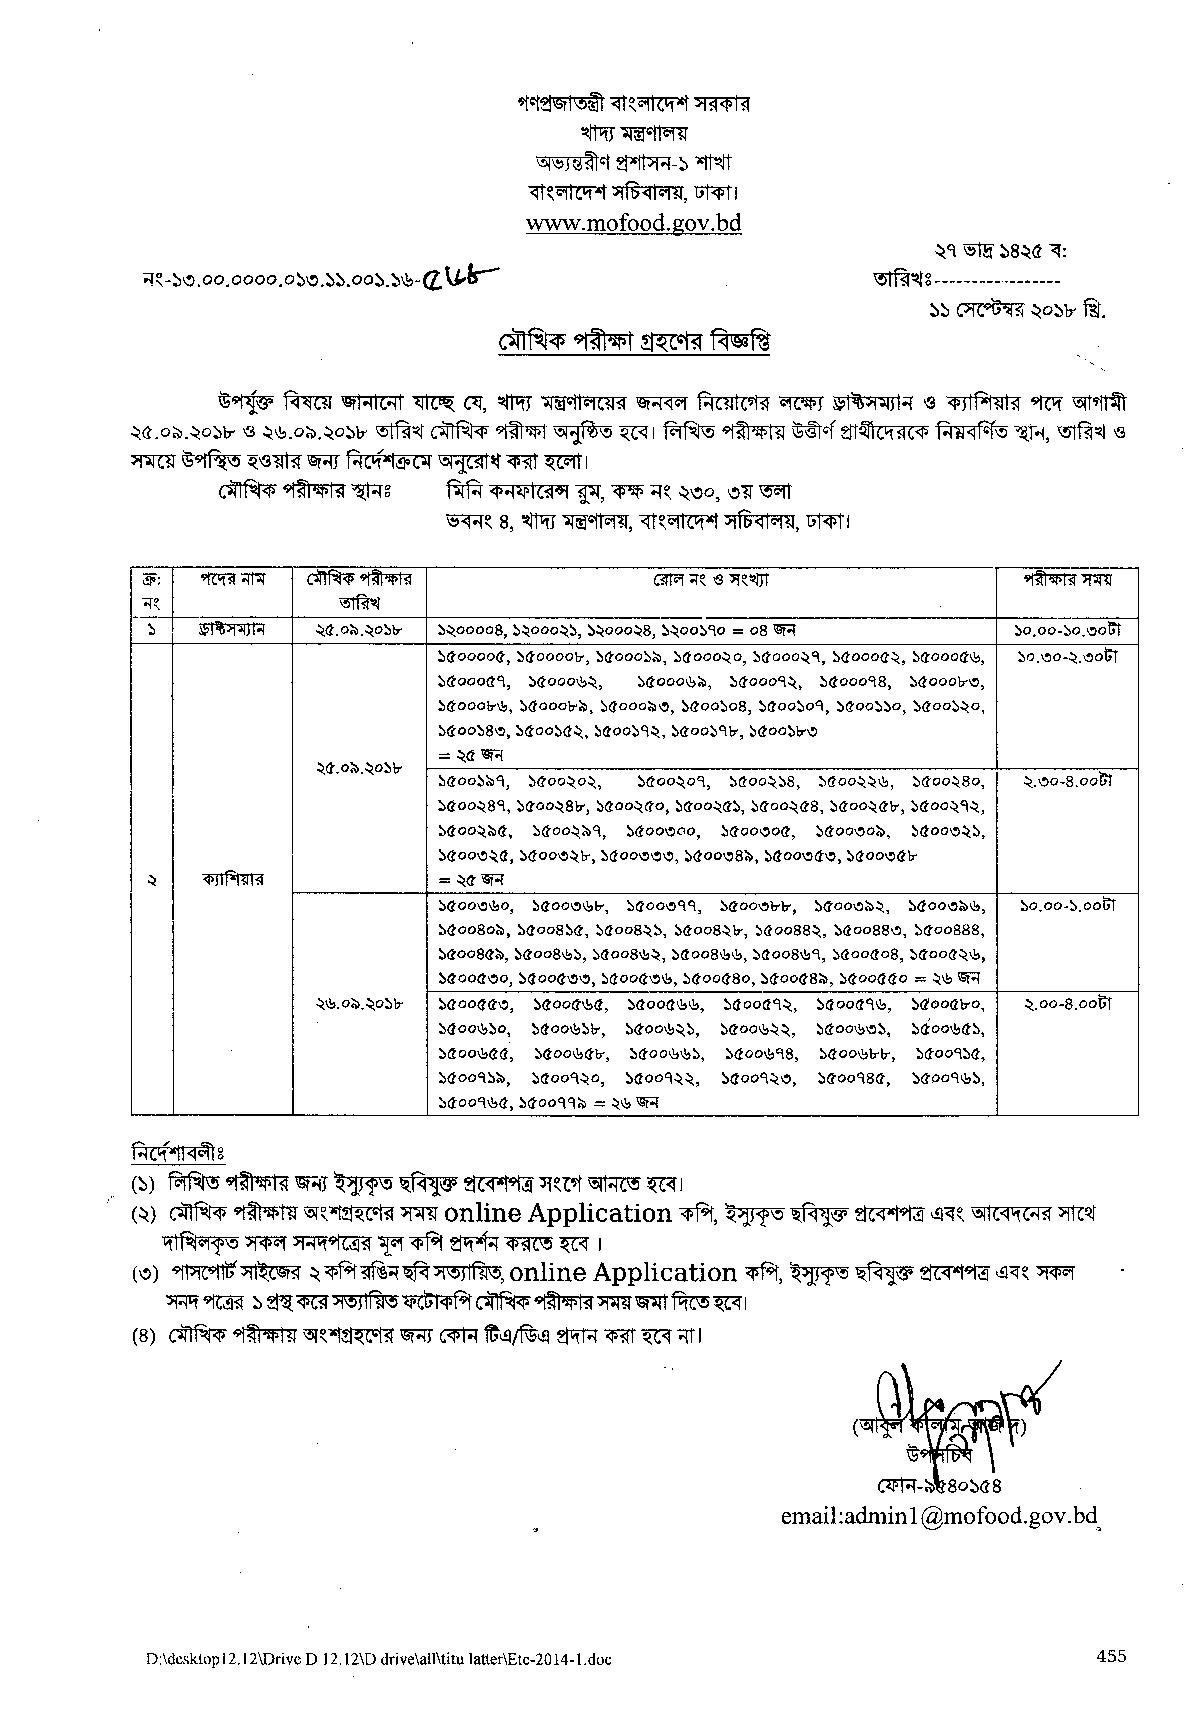 Ministry of Food Exam Date 2018